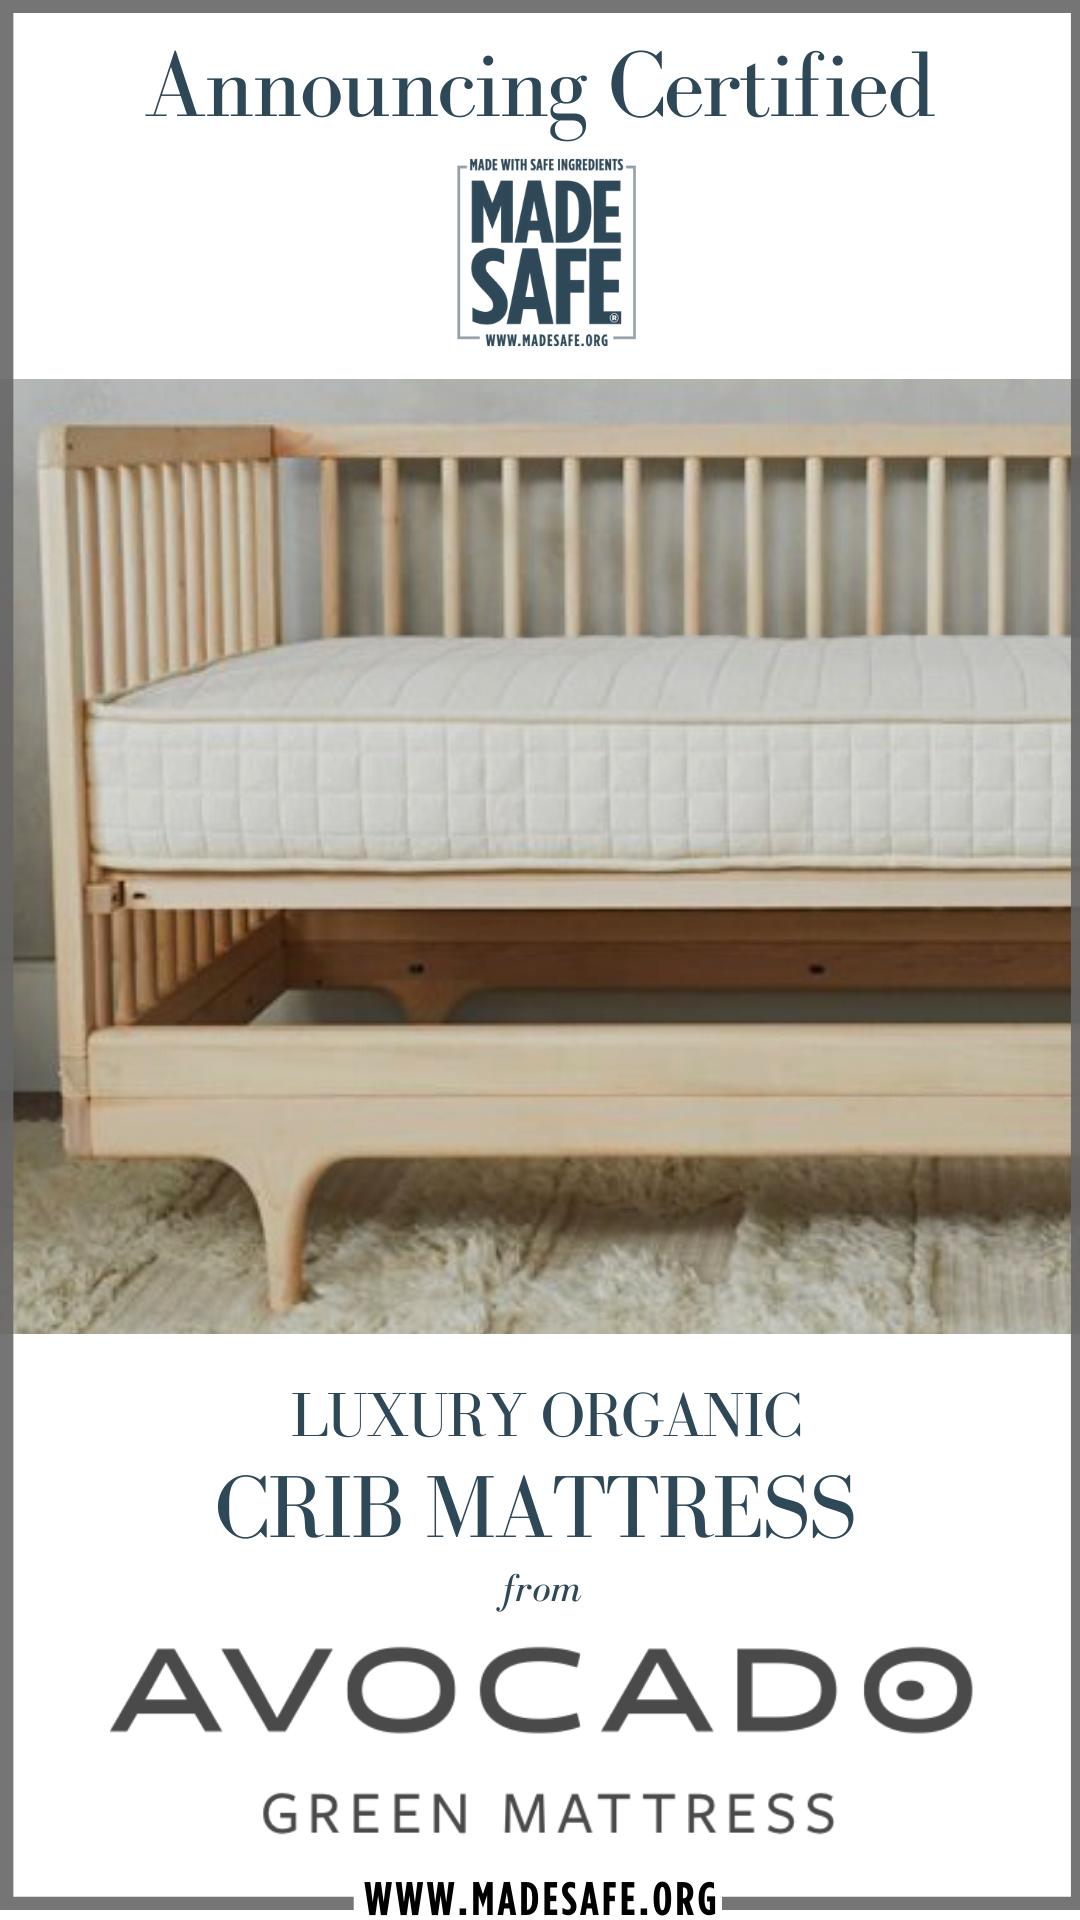 Organic Baby Crib Mattress Infant To Toddler Avocado Green Mattress In 2020 Organic Crib Mattress Crib Mattress Baby Crib Mattress